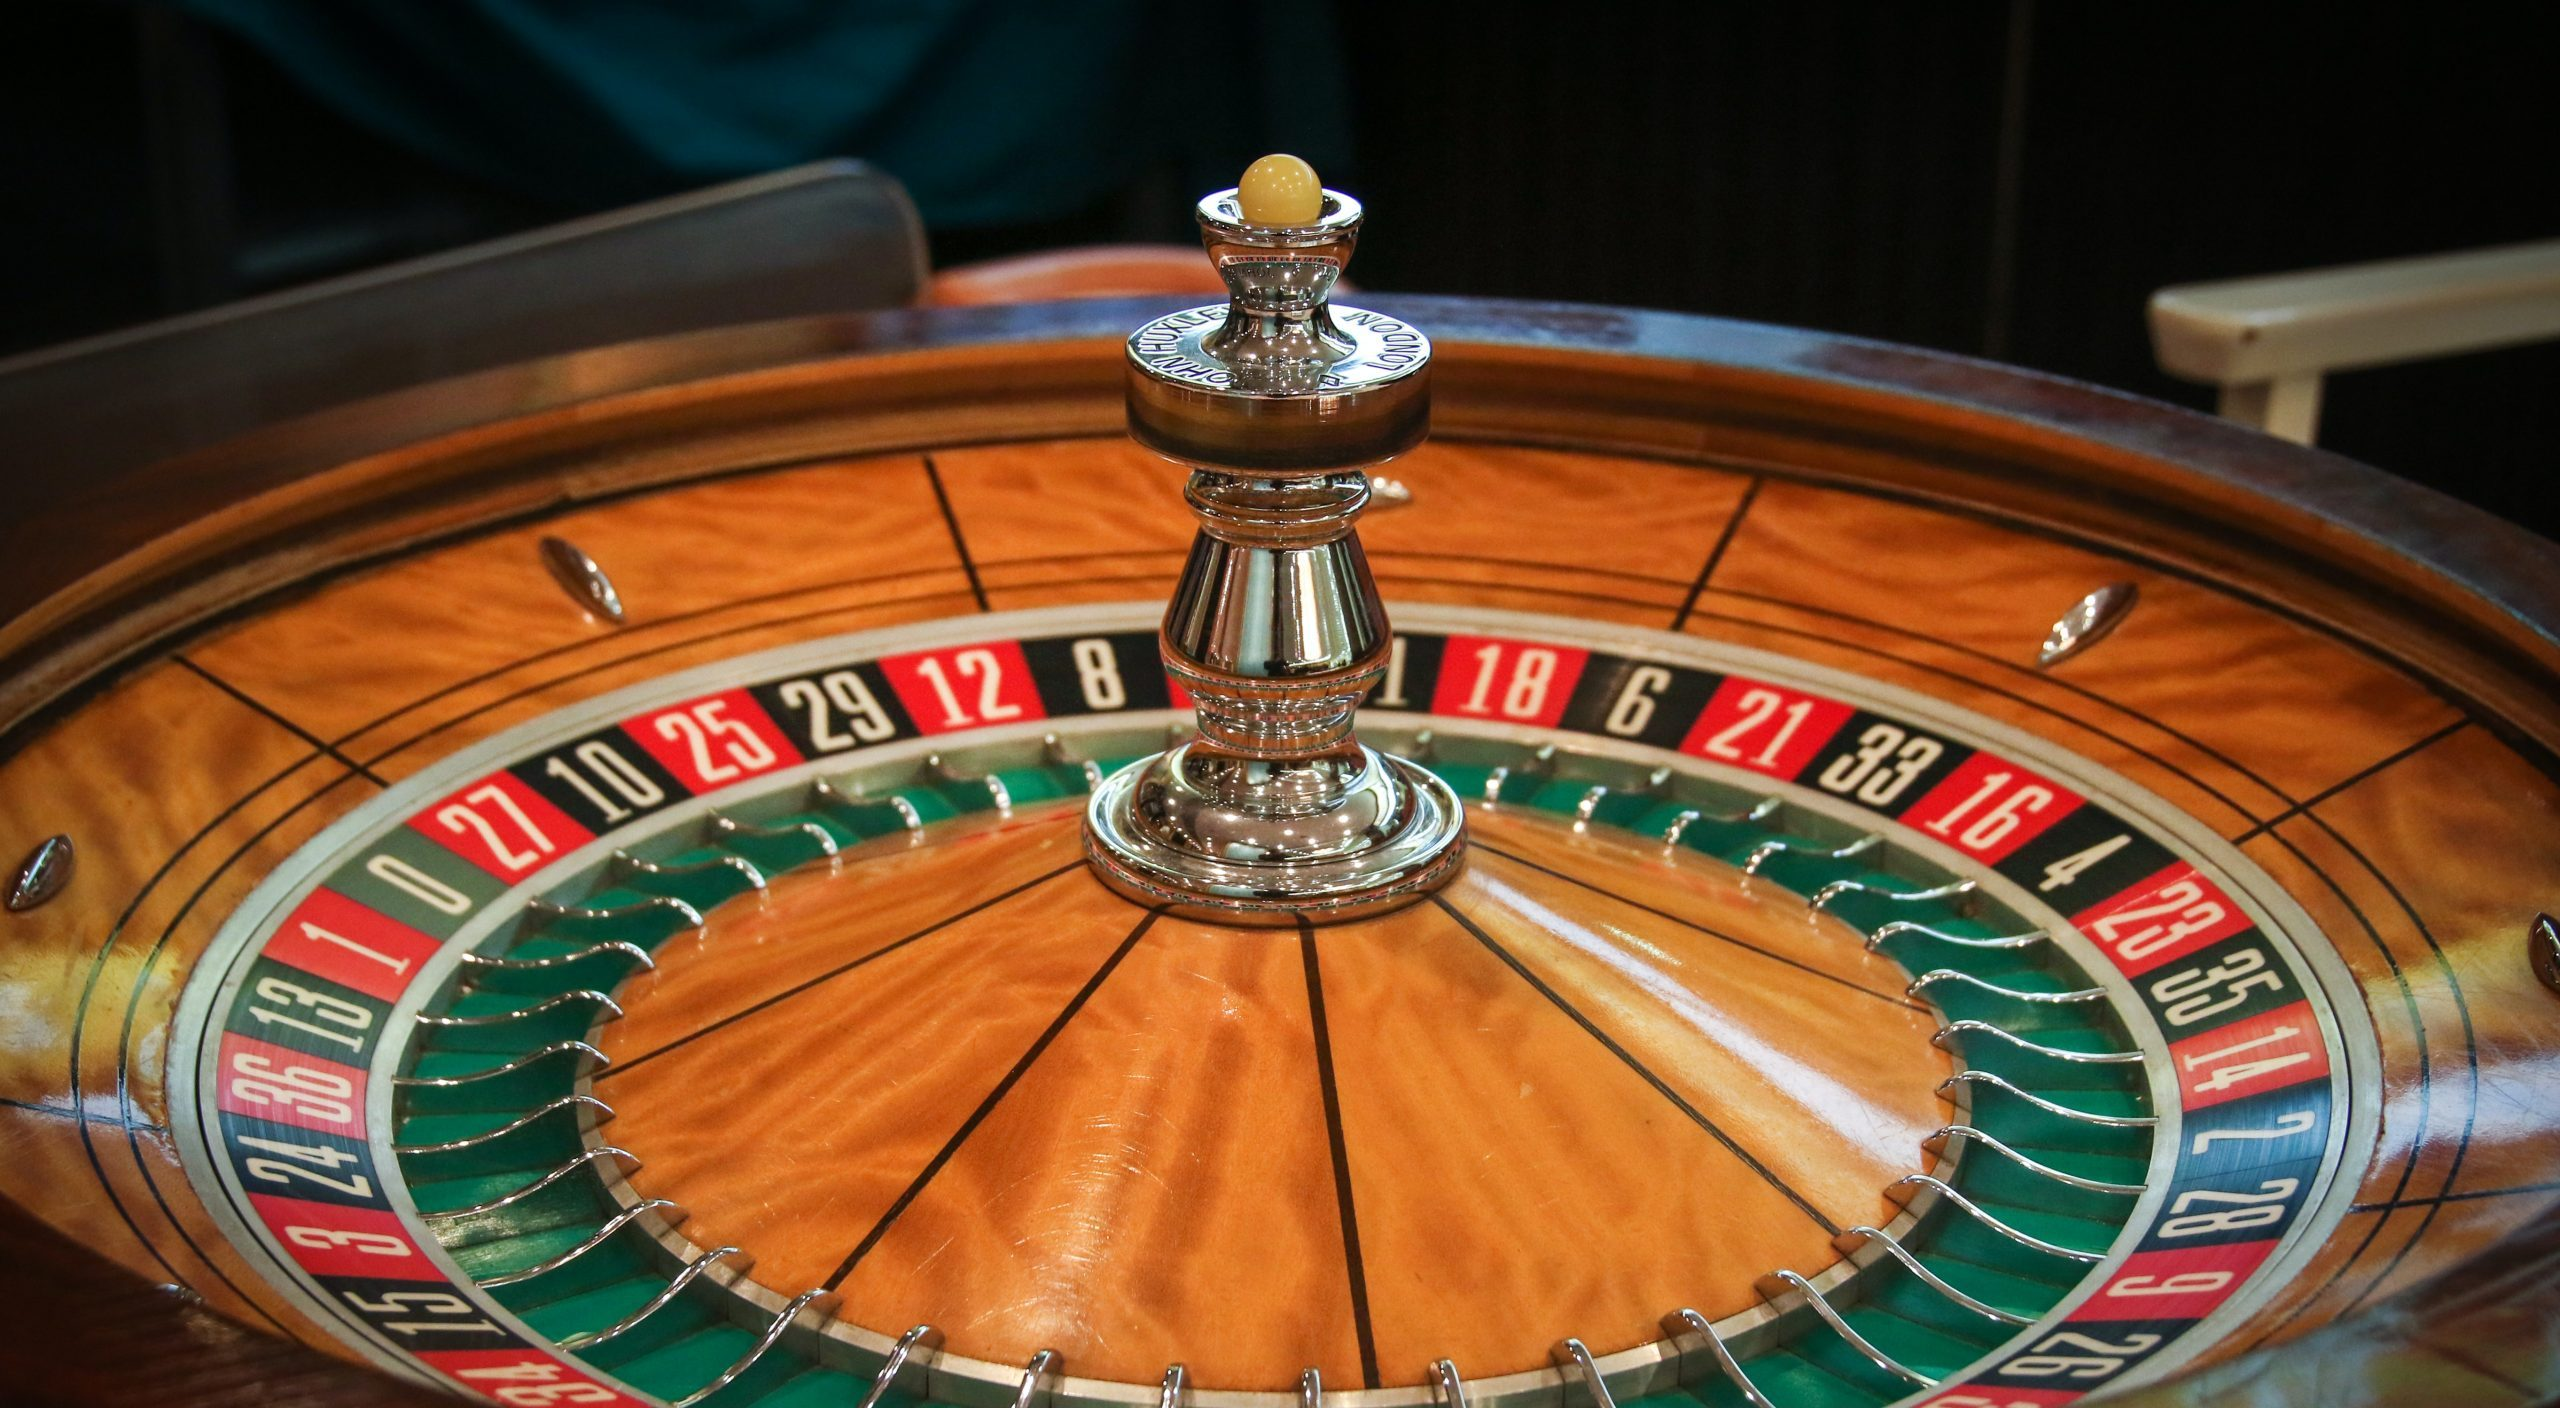 Roulette - The Lowdown on Games of Skill vs. Games of Chance - Translation Royale